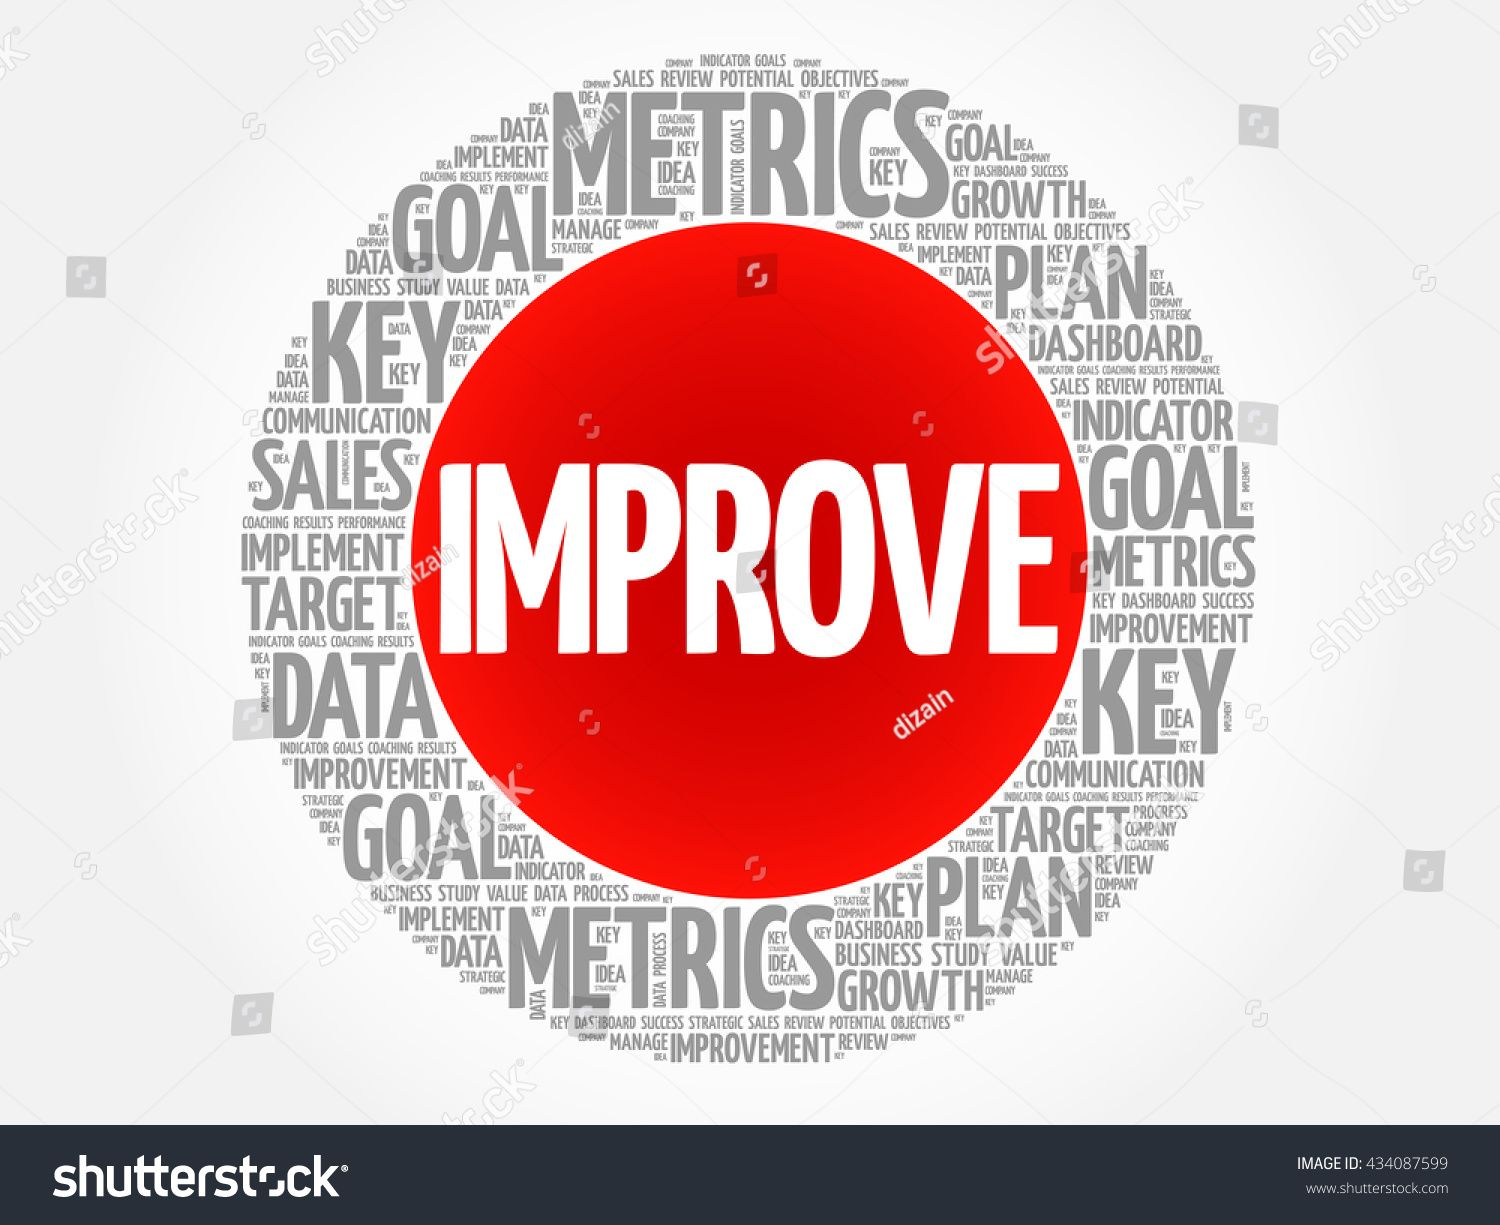 Improve circle word cloud business concept background ad